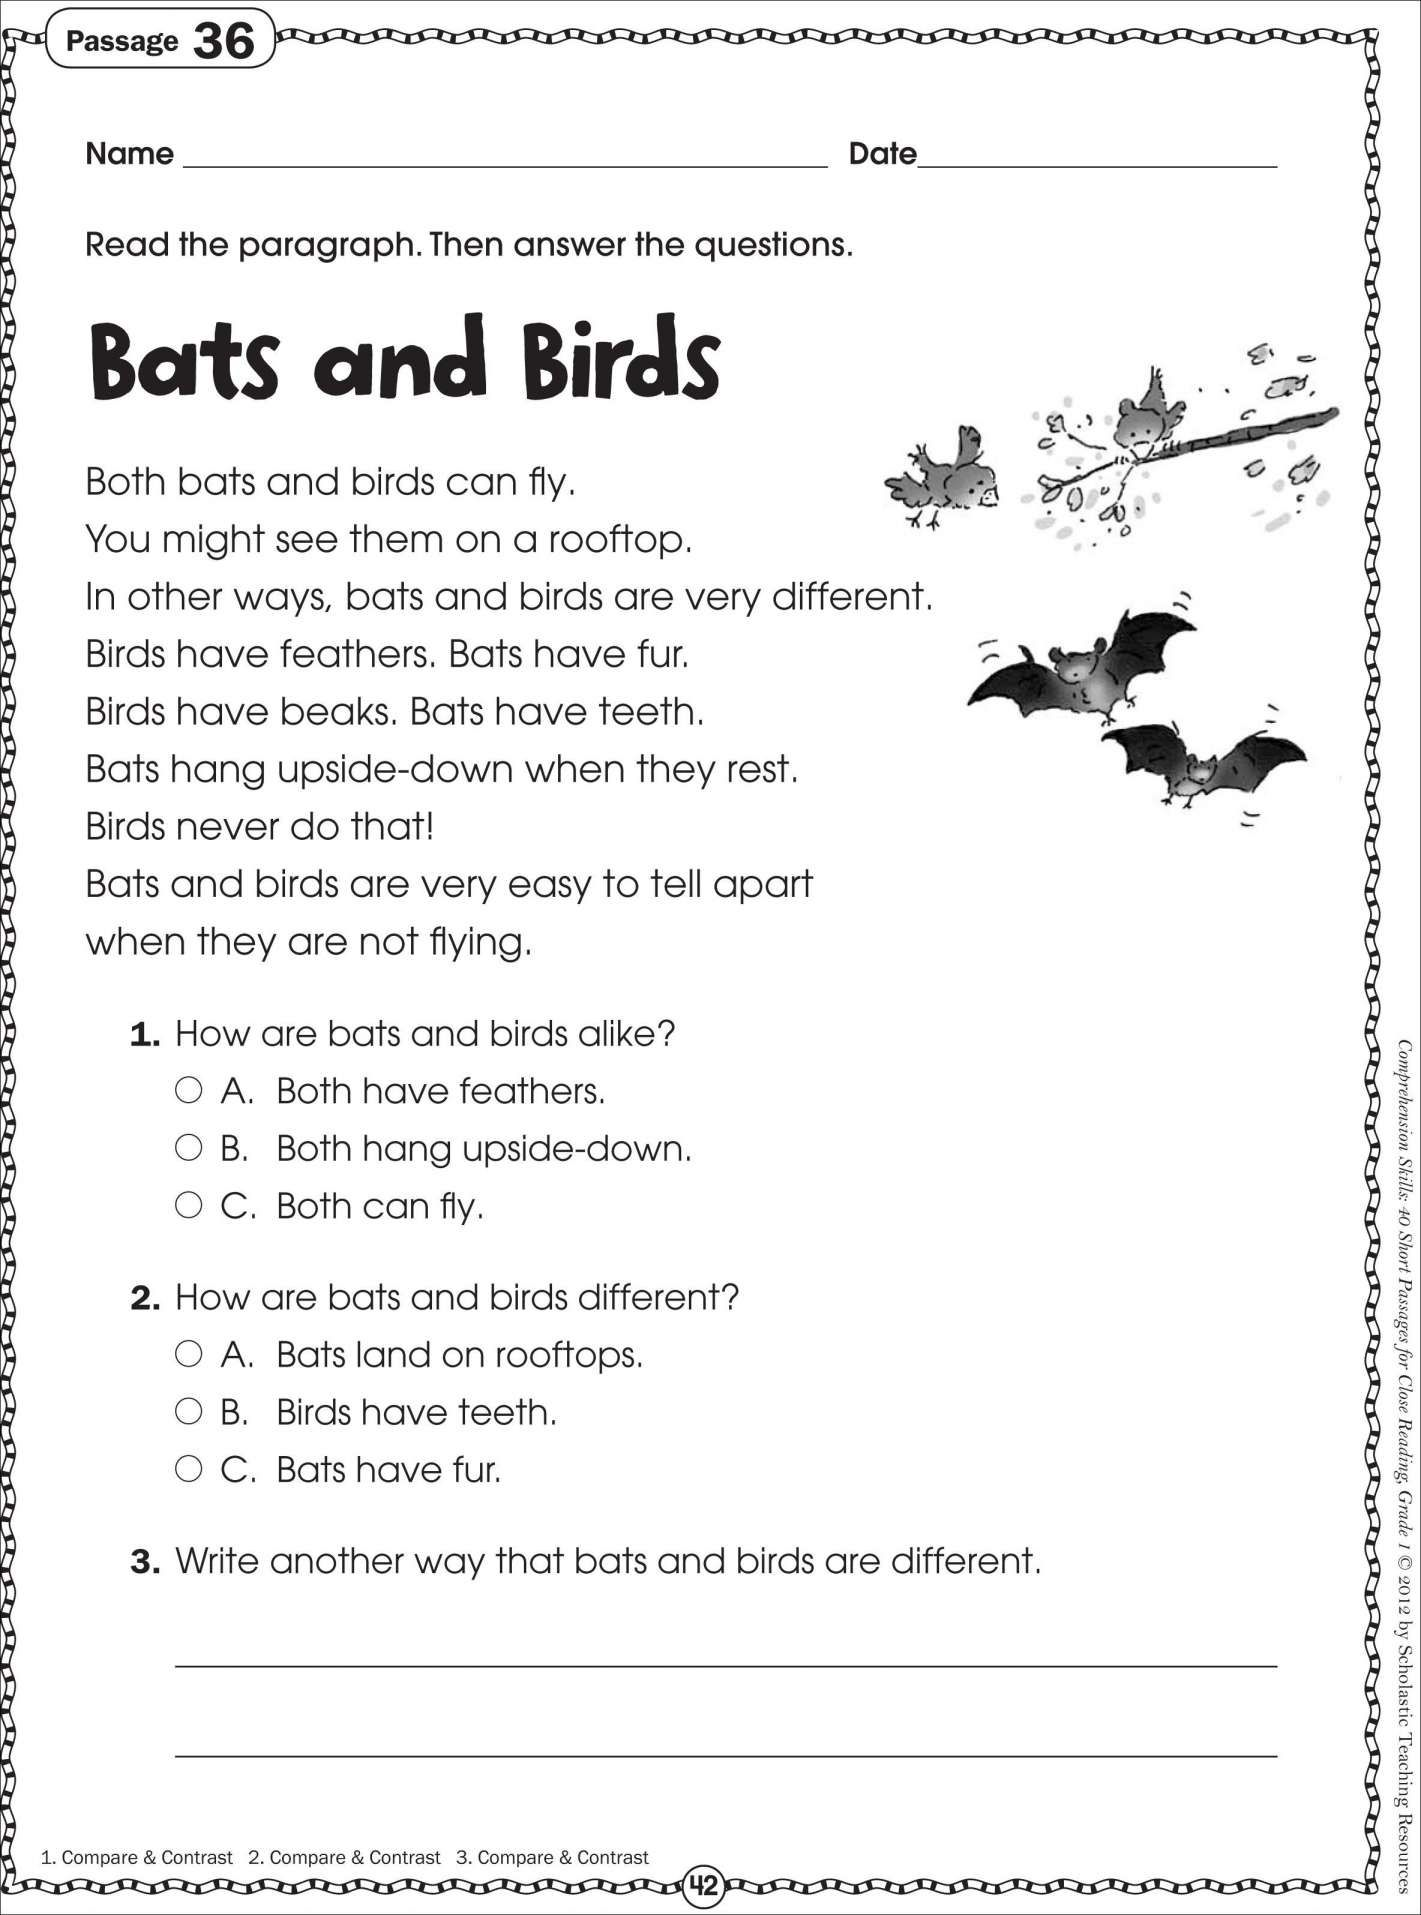 Reading Comprehension Worksheets 5th Grade Multiple Choice And